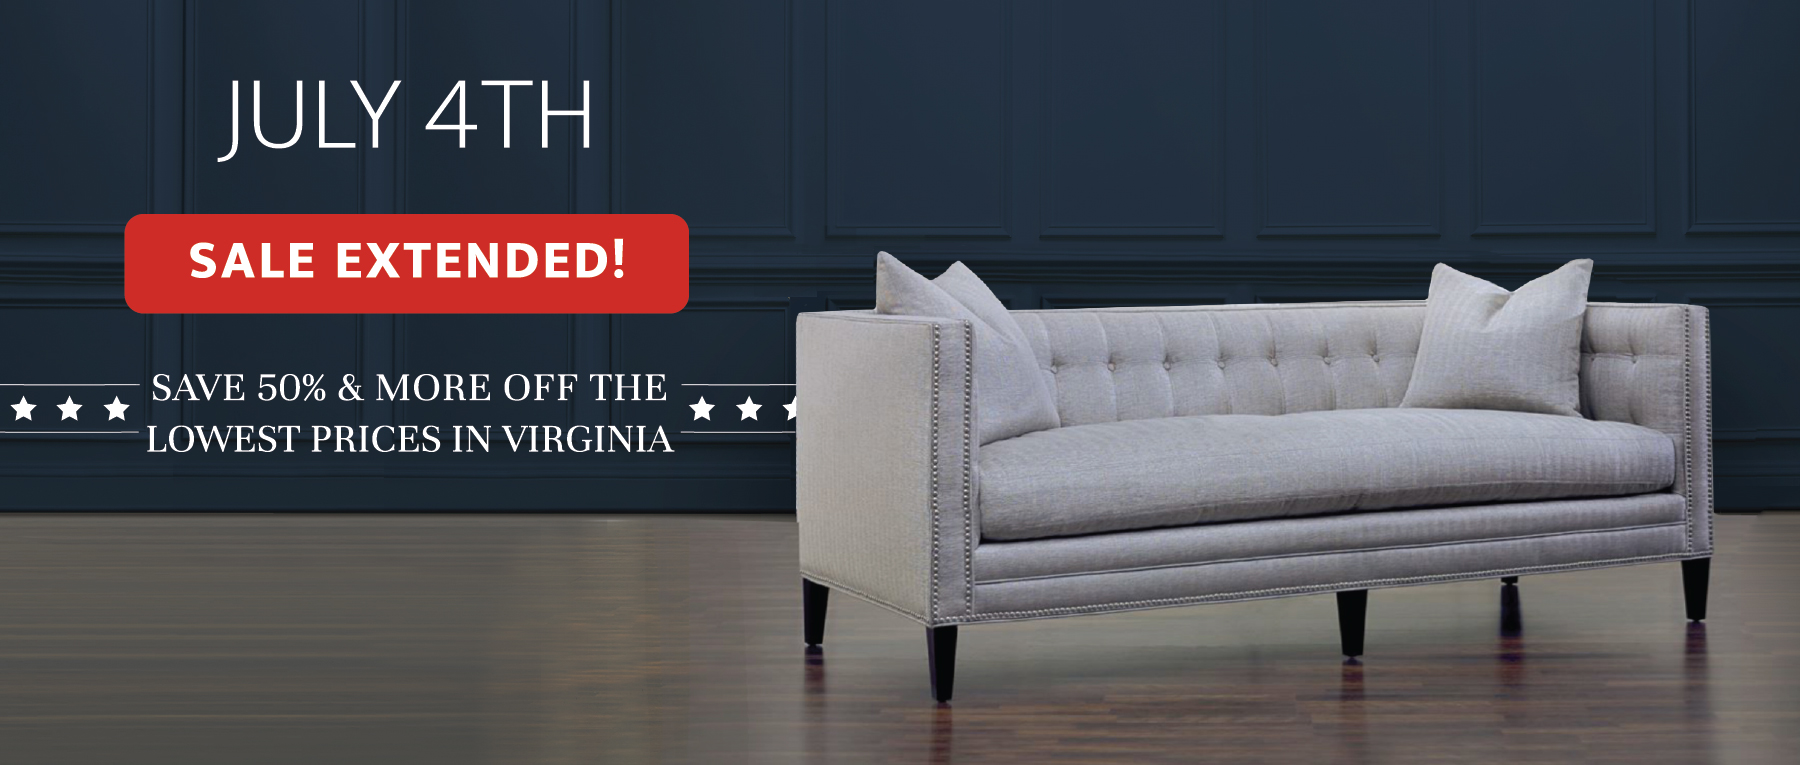 July 4th - Sale Extended - The Biggest Day in Furniture - SAve 50% & More OFF